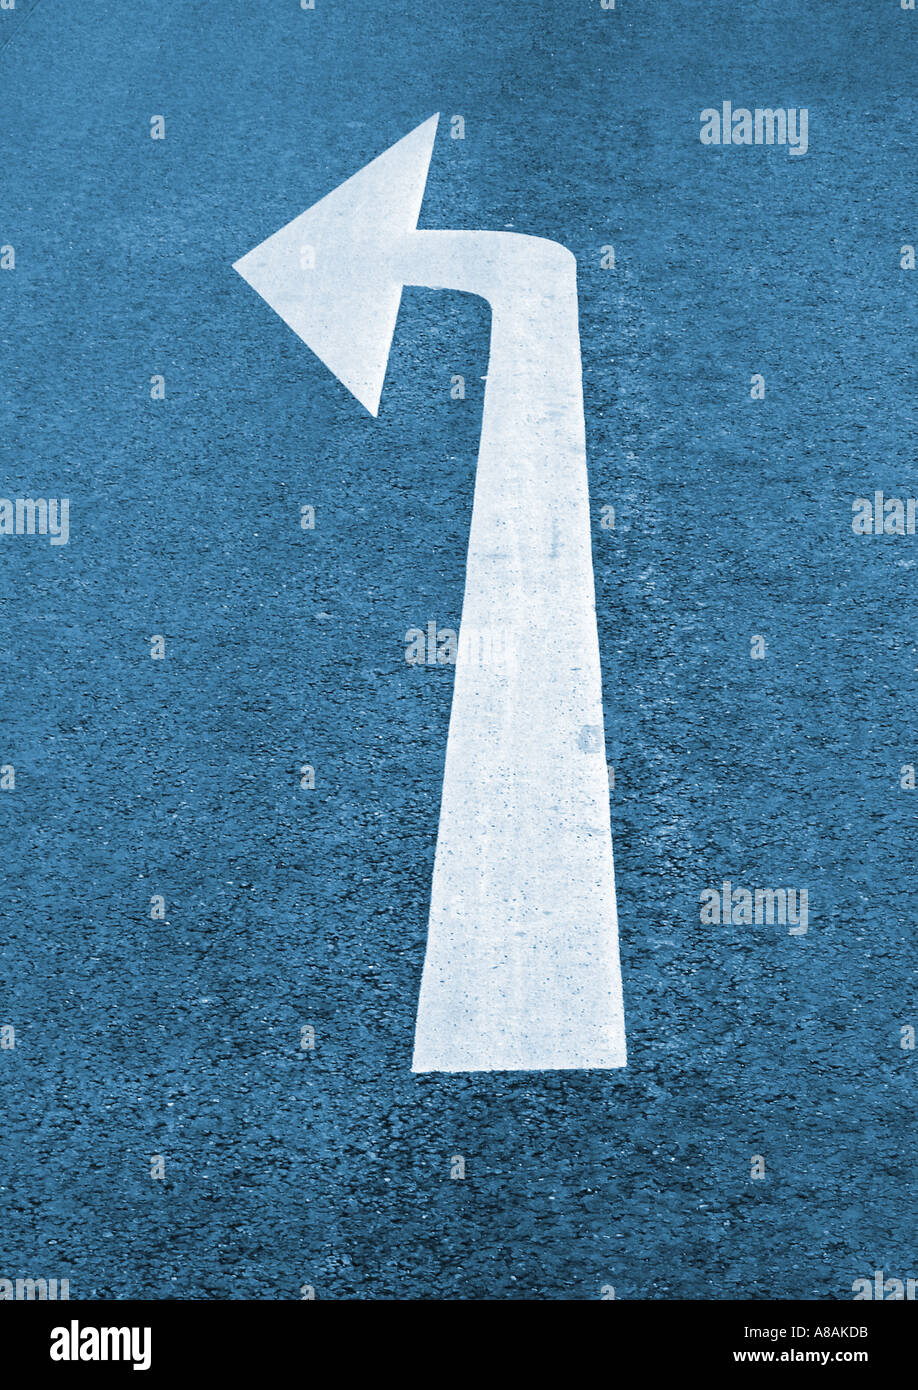 directional marker Richtungspfeil - Stock Image